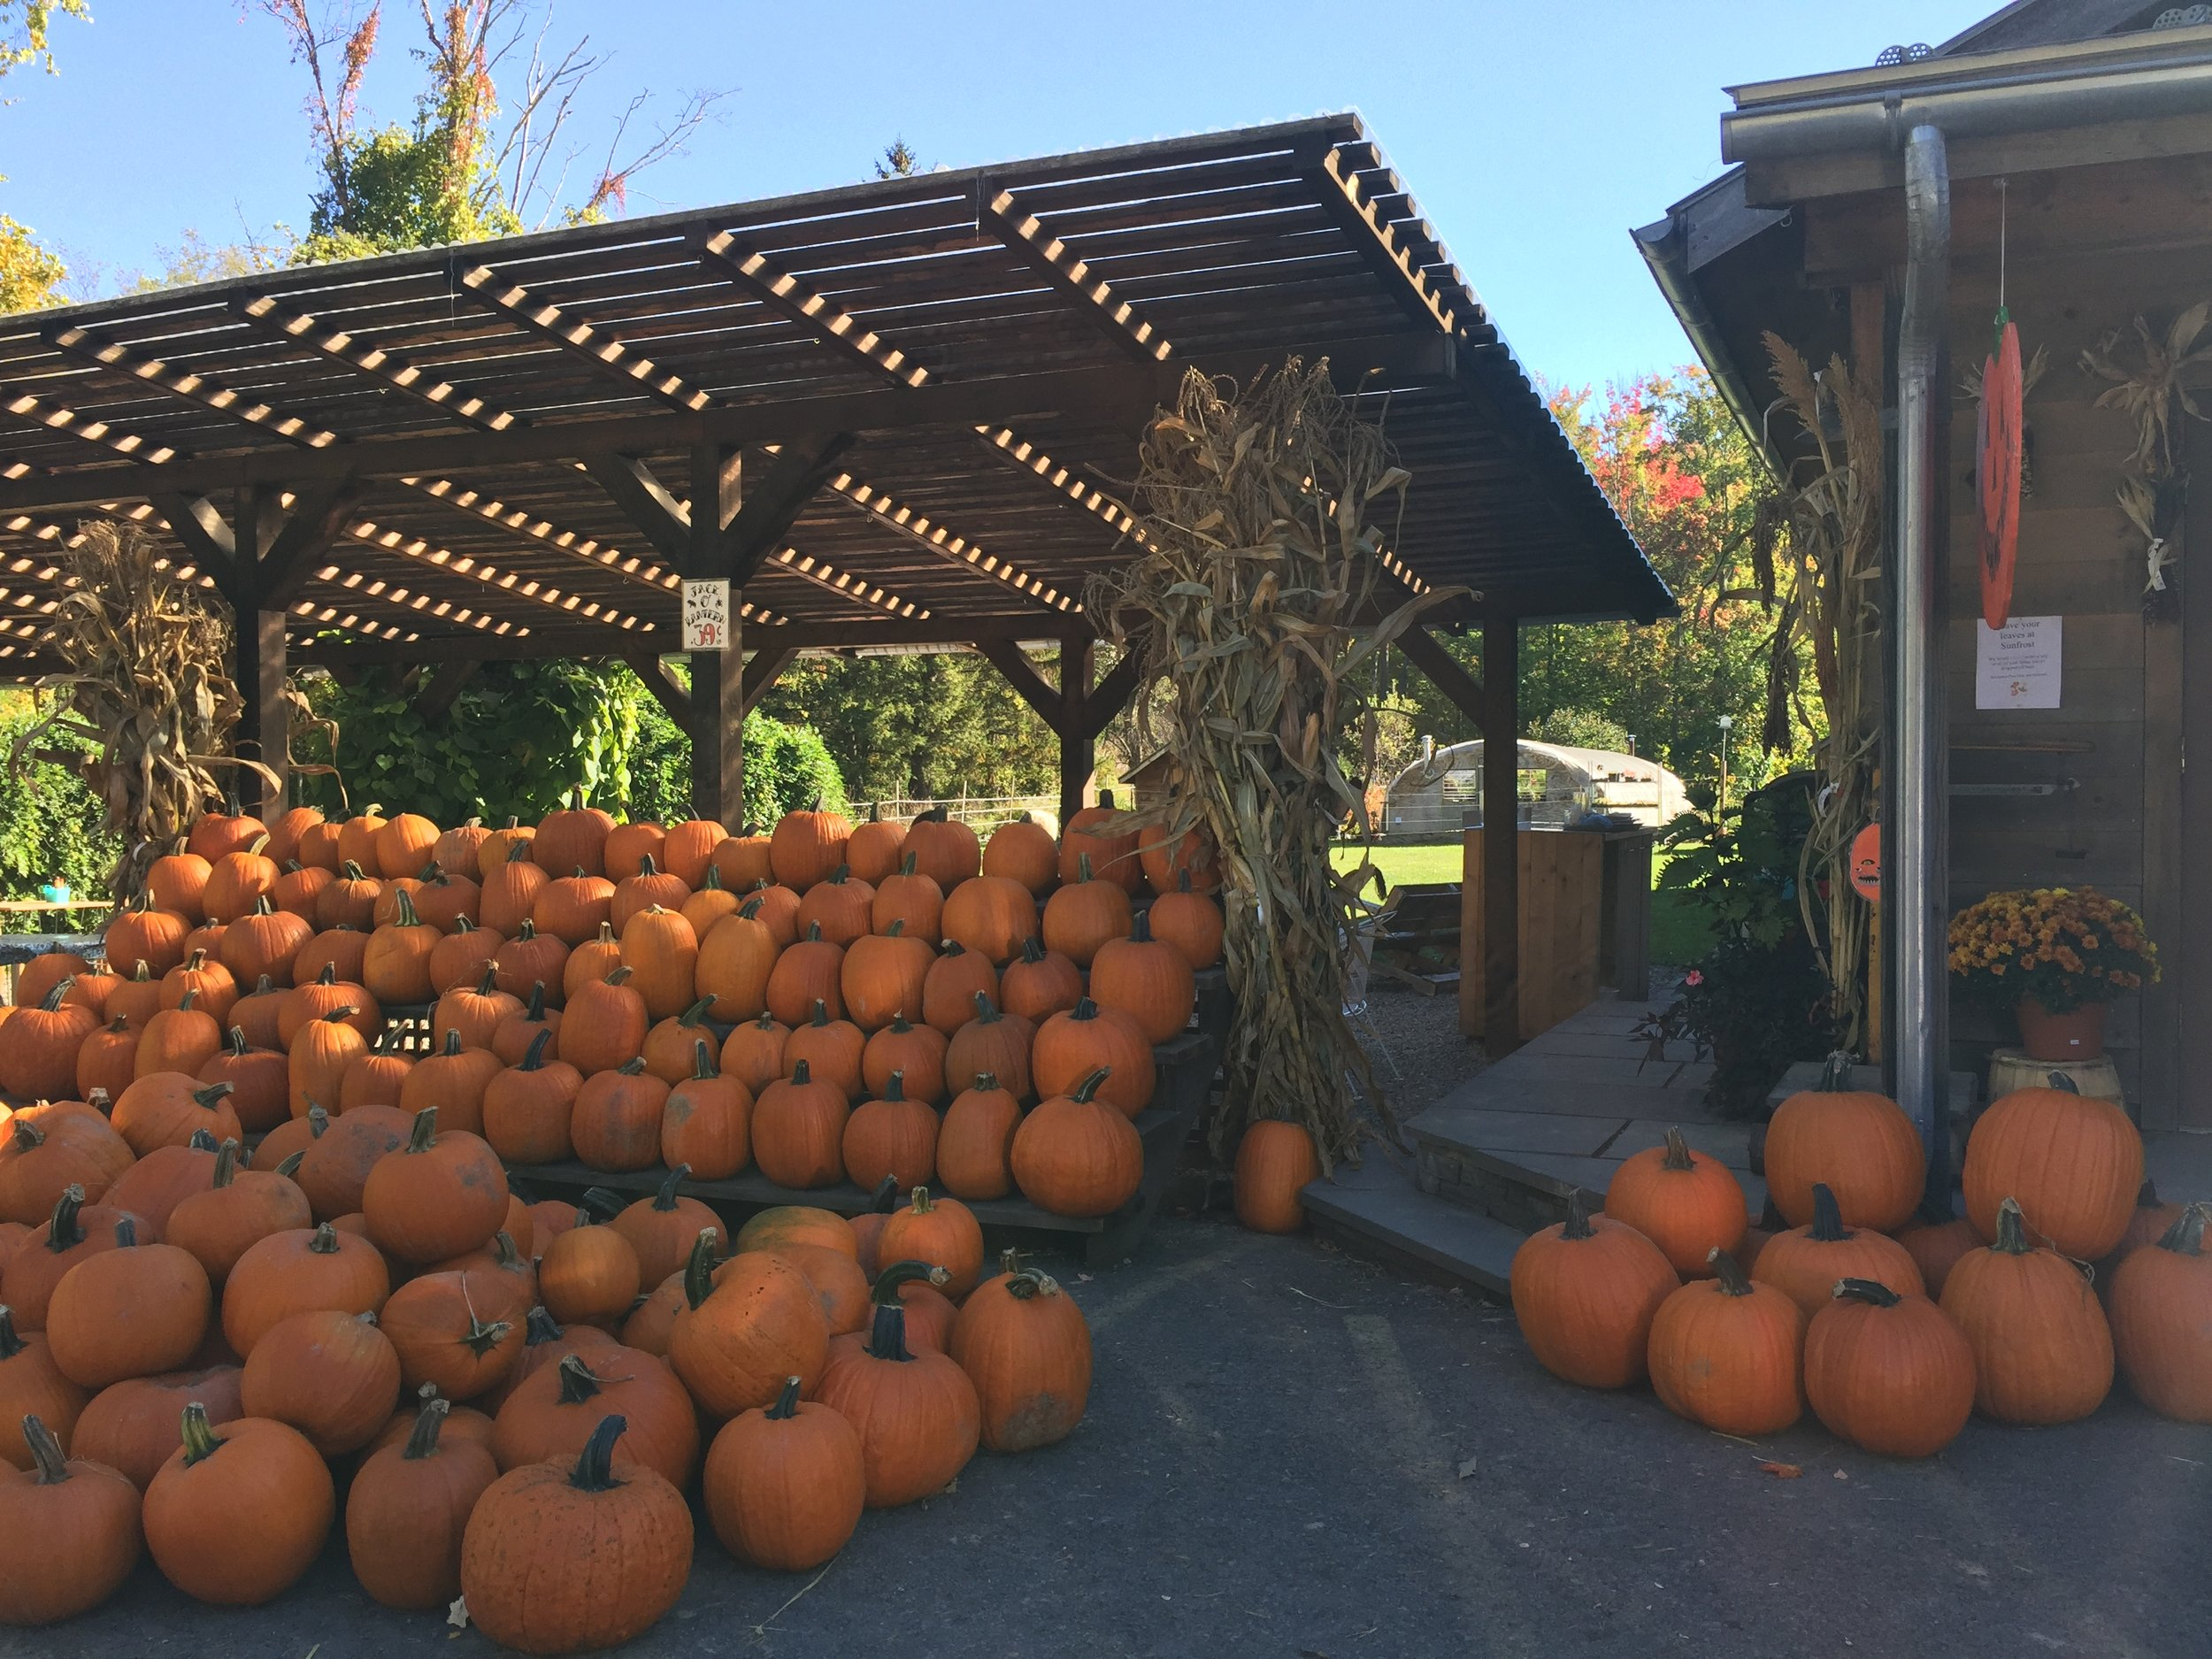 Behind the pumpkins is a seating area for lunch. Great green space for the kids to run around in.